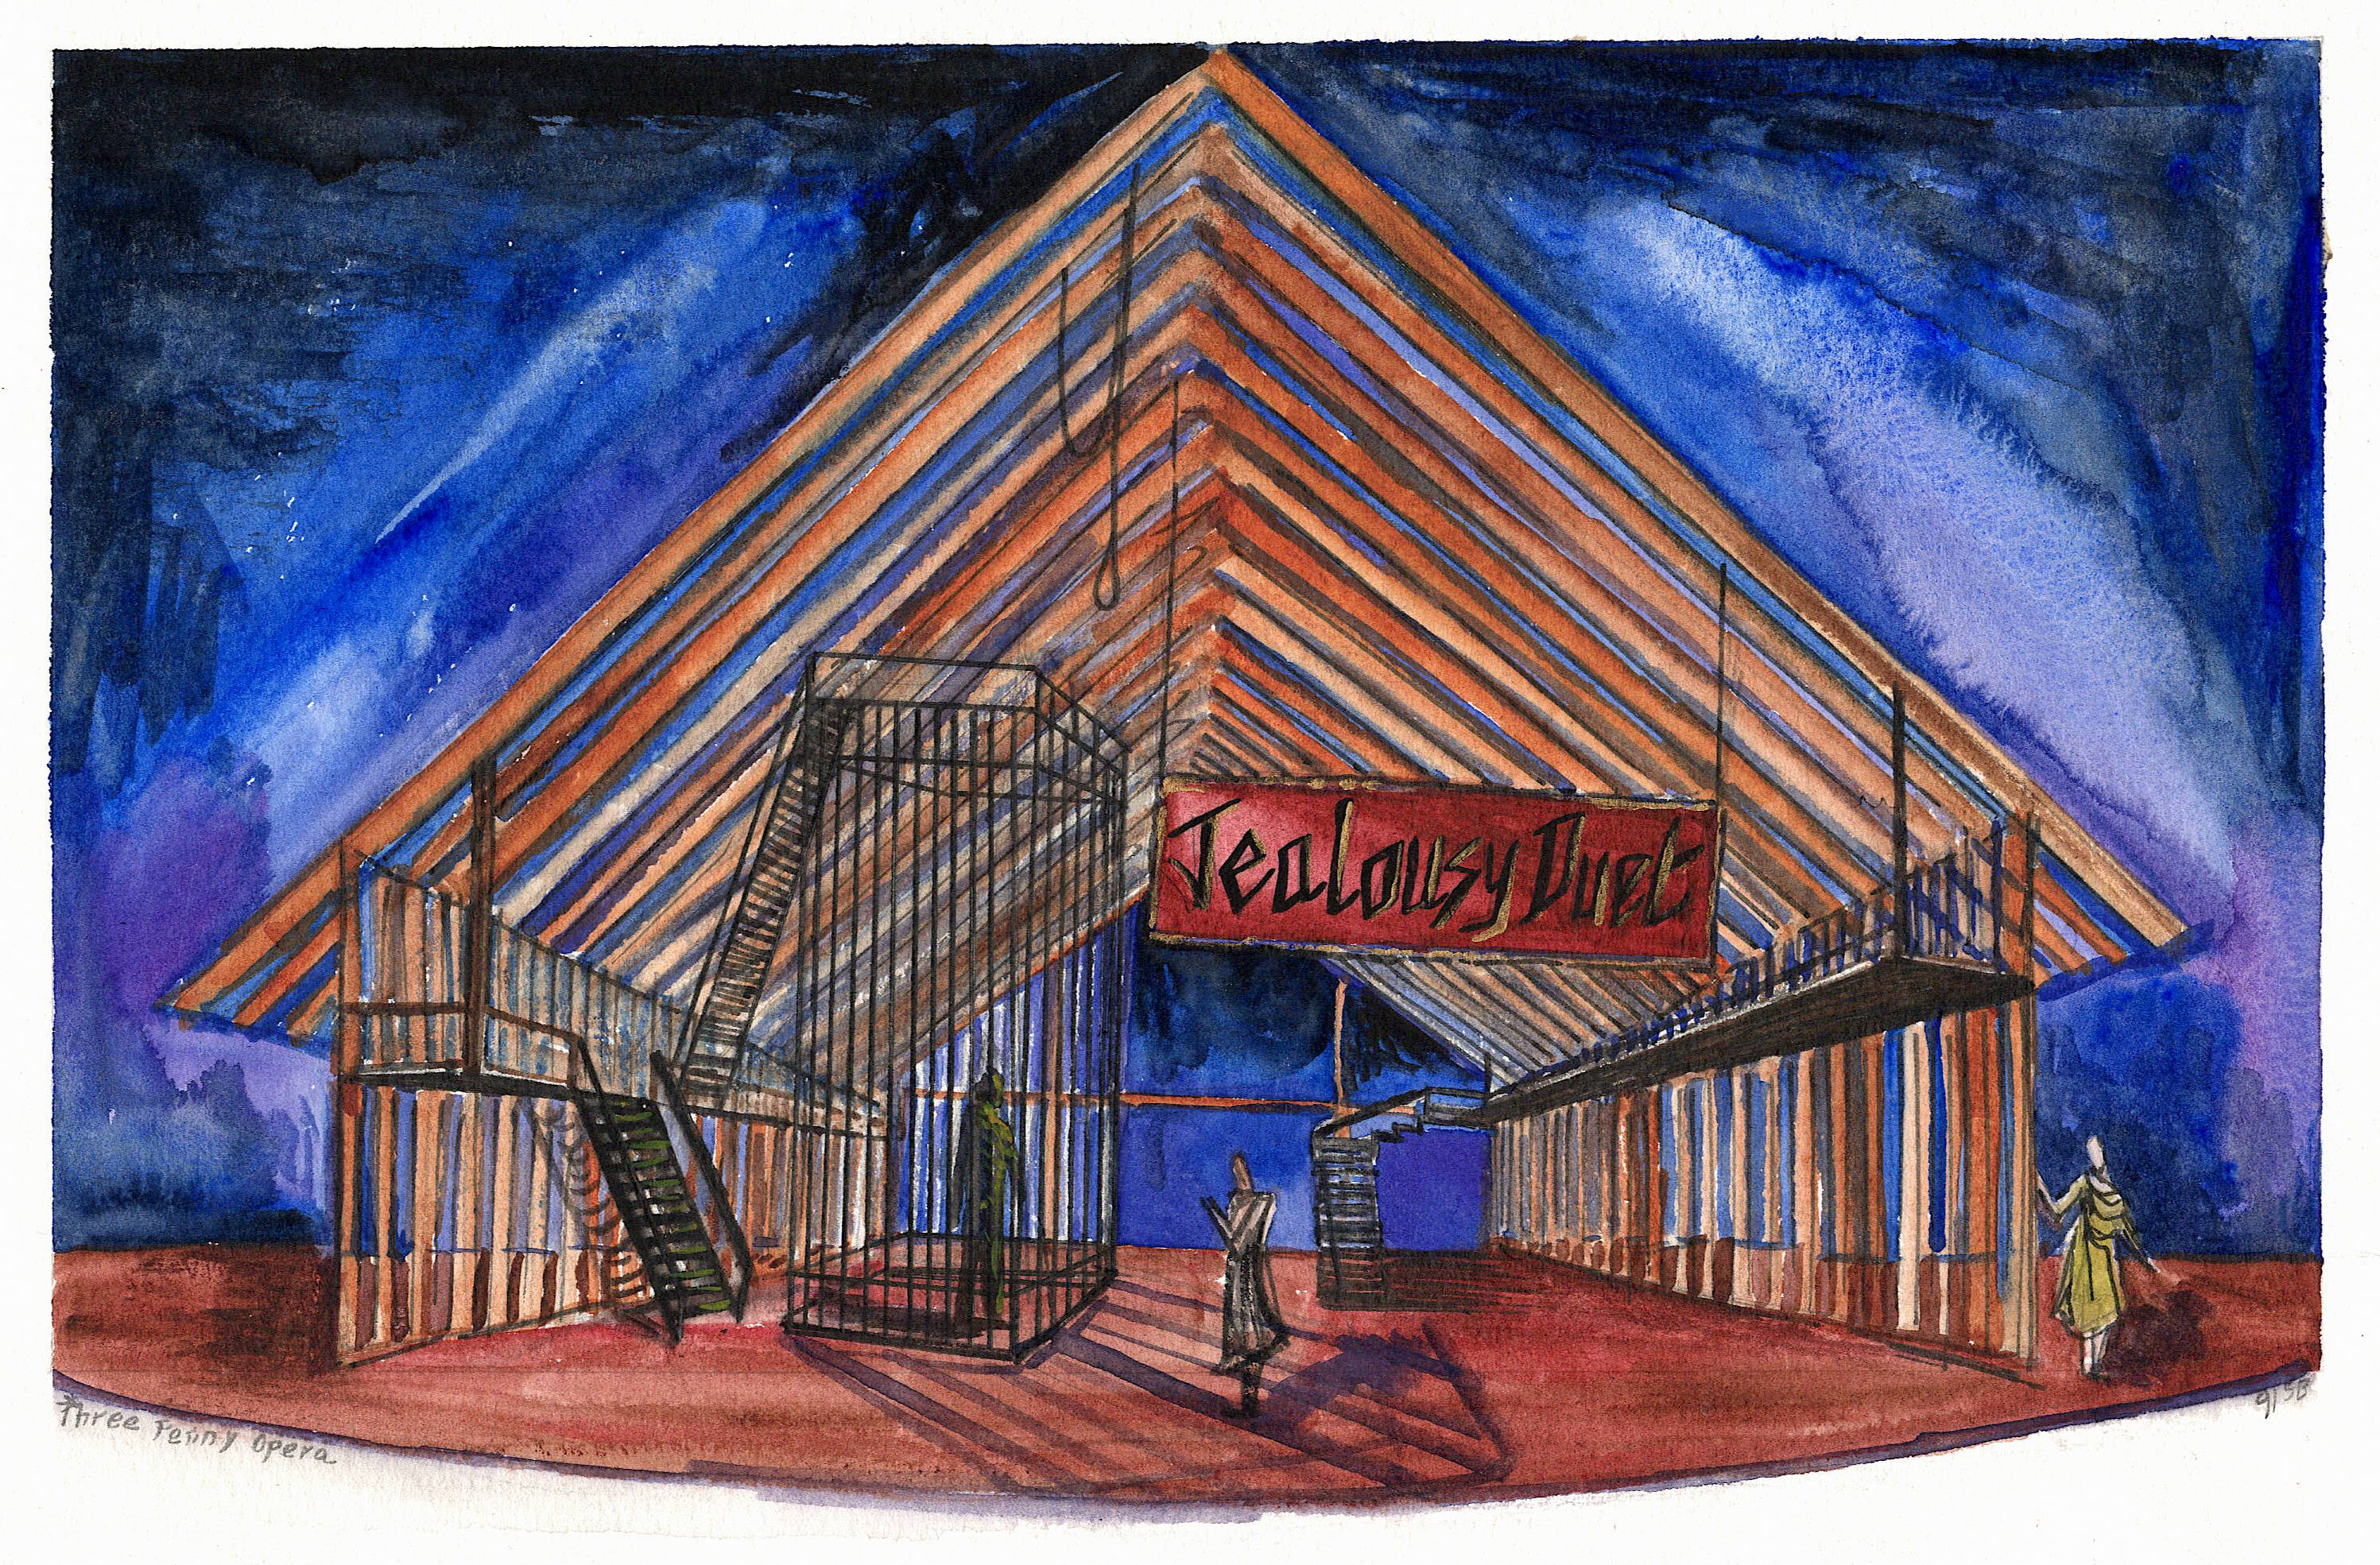 The Three Penny Opera by BertoltBrecht - Model and Set design renderings - 1